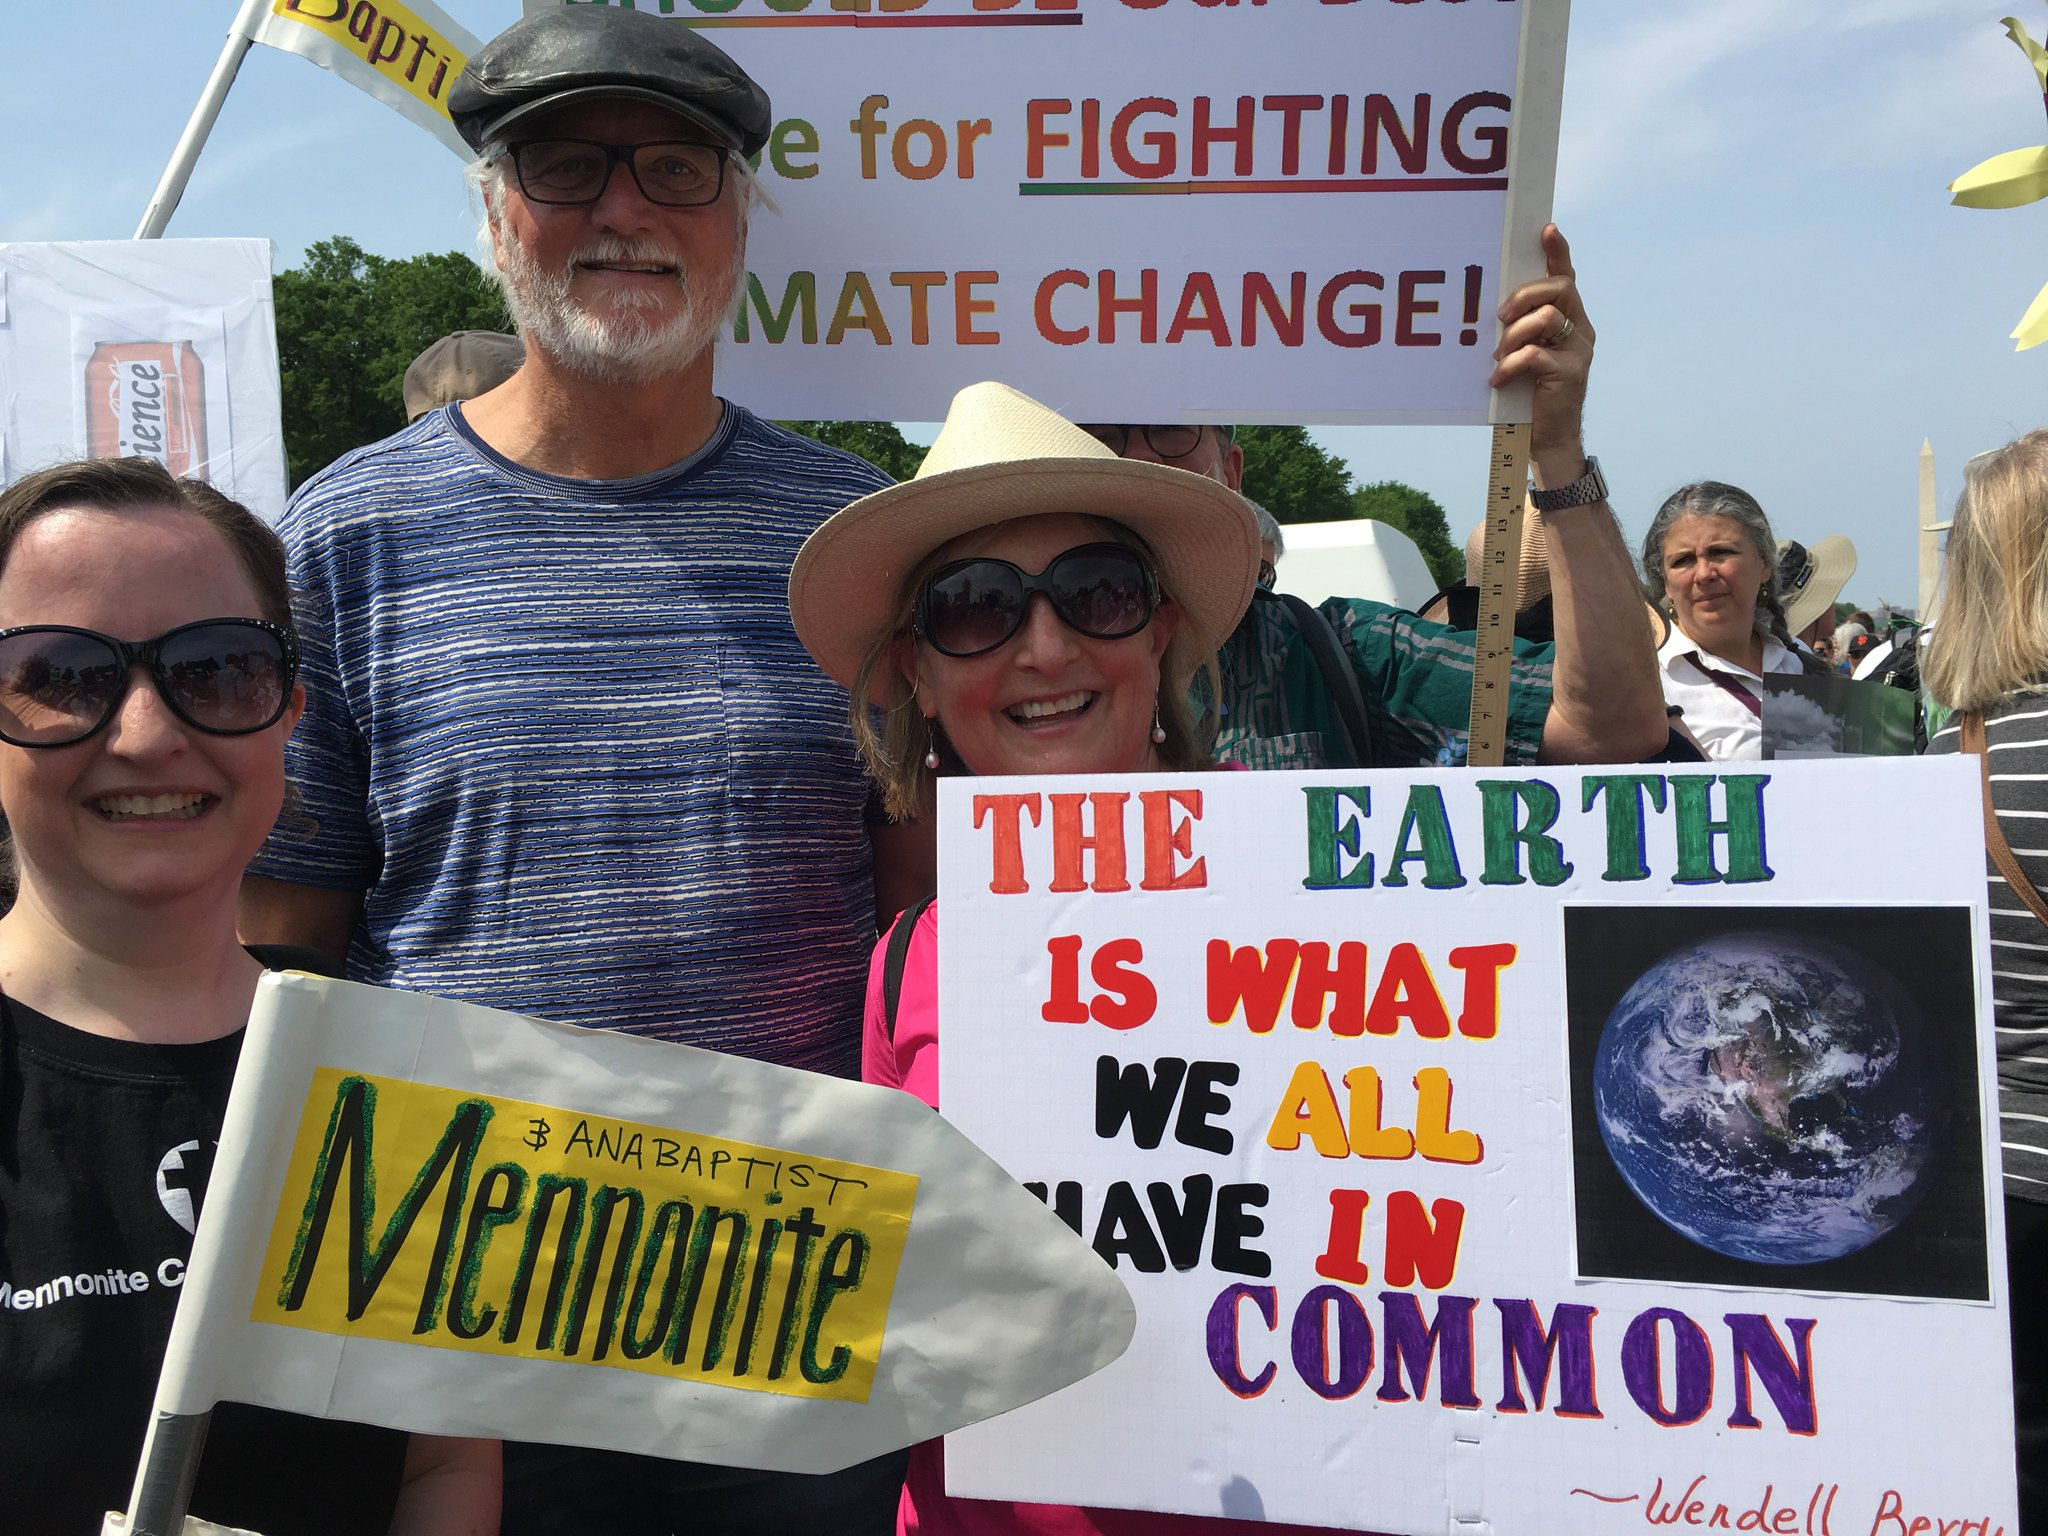 A few of the Mennonites at the People's Climate March in DC today. #KeepersofFaith #climatemarch https://t.co/kprdLHjs1q